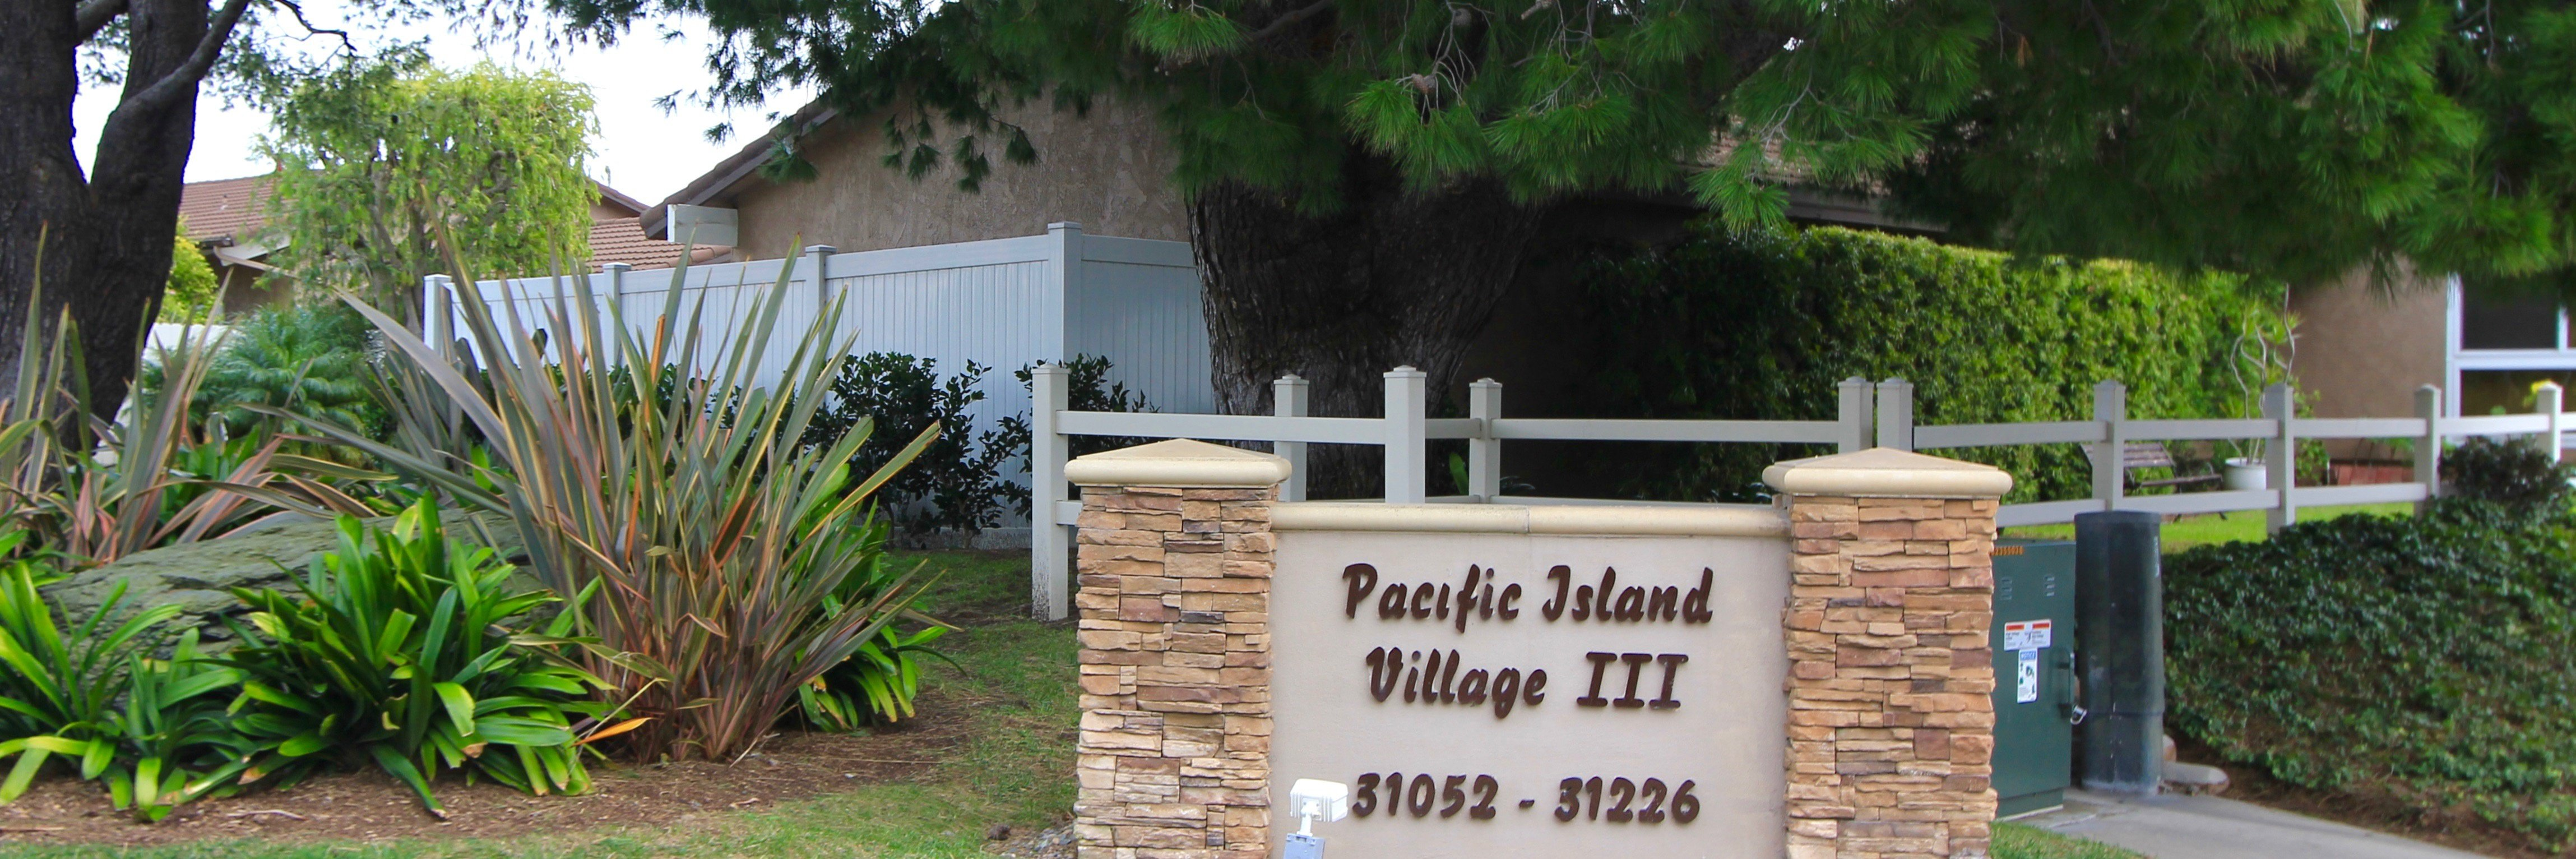 Pacific Island Village is a neighborhood of homes located in Laguna Niguel California